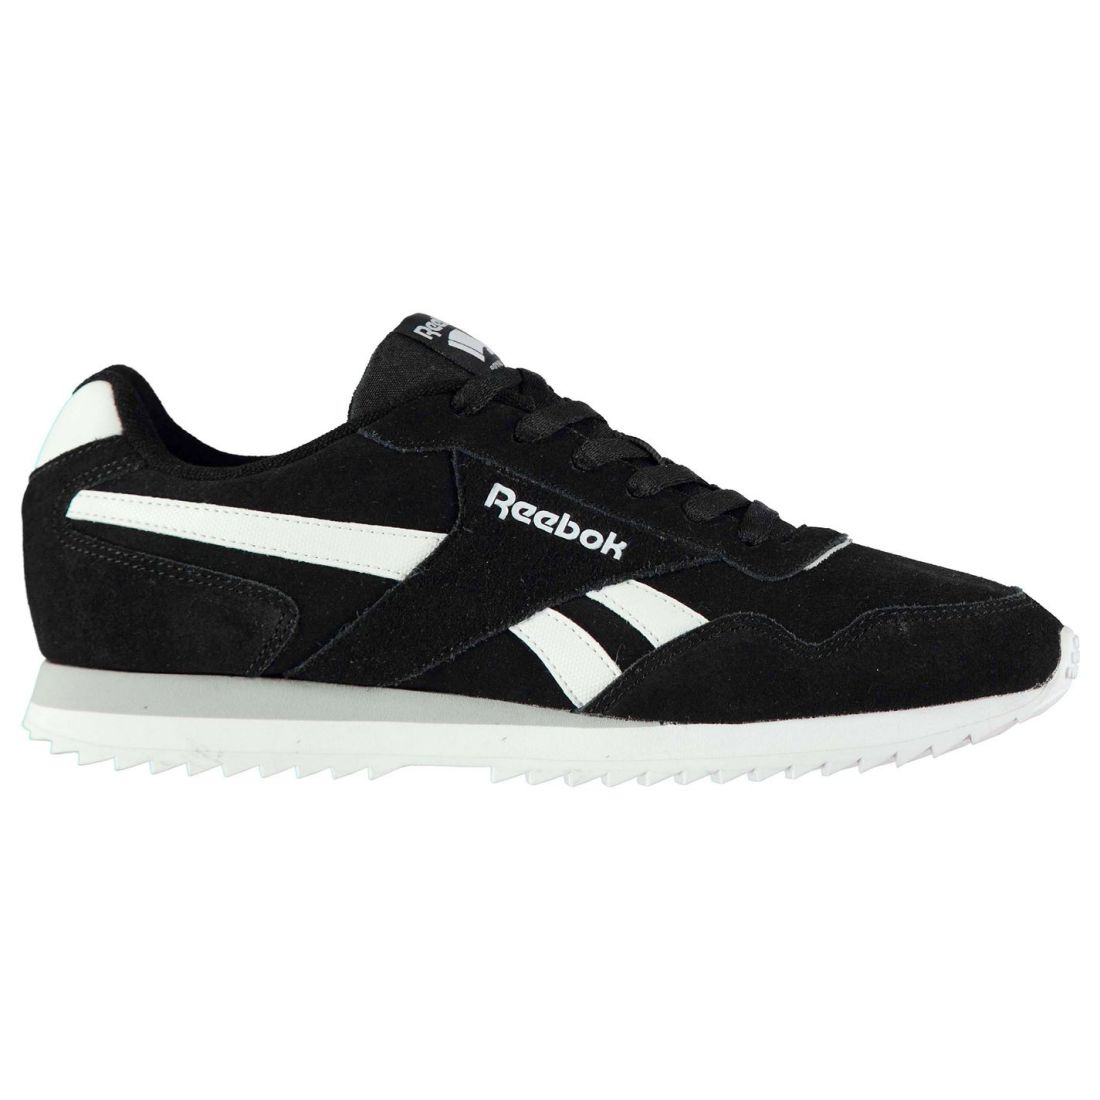 c1b9ad86e Reebok Men Gents Royal Glide Ripple Suede Trainers Shoes Footwear Laces  Fastened 6 6 di 6 Vedi Altro